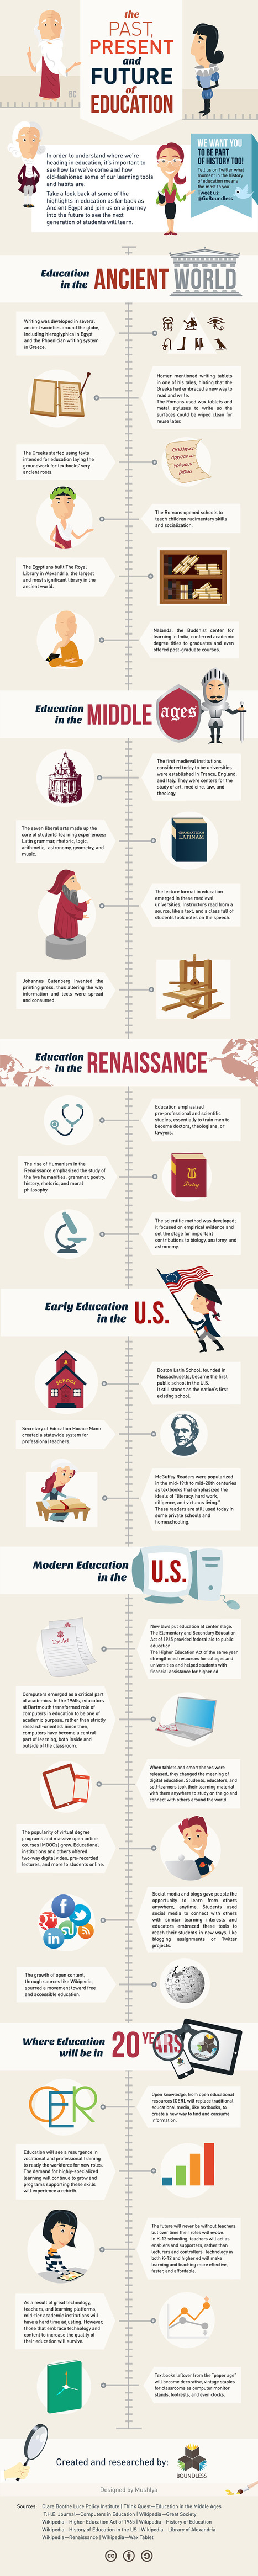 Infographic: The History of Education | Education Technology @ NWR7 | Scoop.it